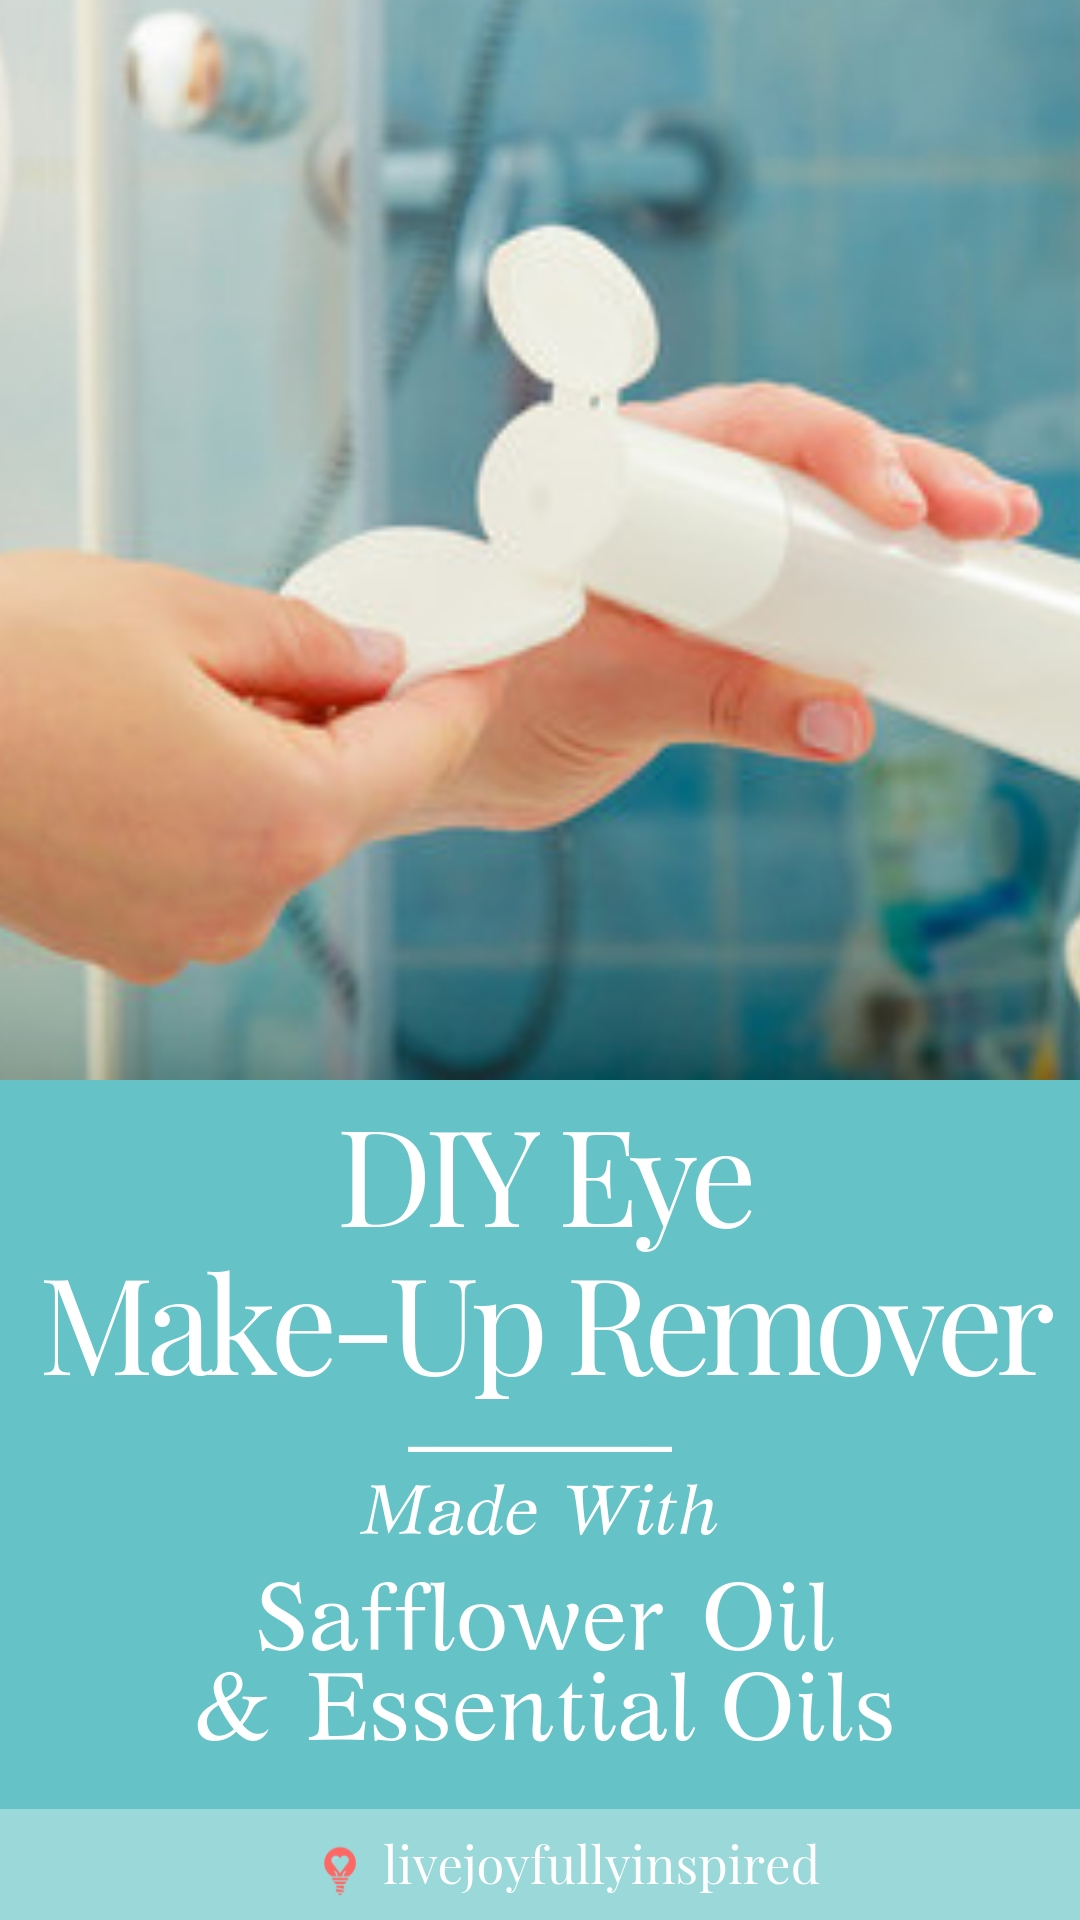 DIY Make-Up Remover. This one is full of nourishing goodies such as essential oils, infused safflower oil, and even a little aloe vera gel. It's so important to have a regular skin care regimen. #diybeauty #eyemakeupremover #essentialoils